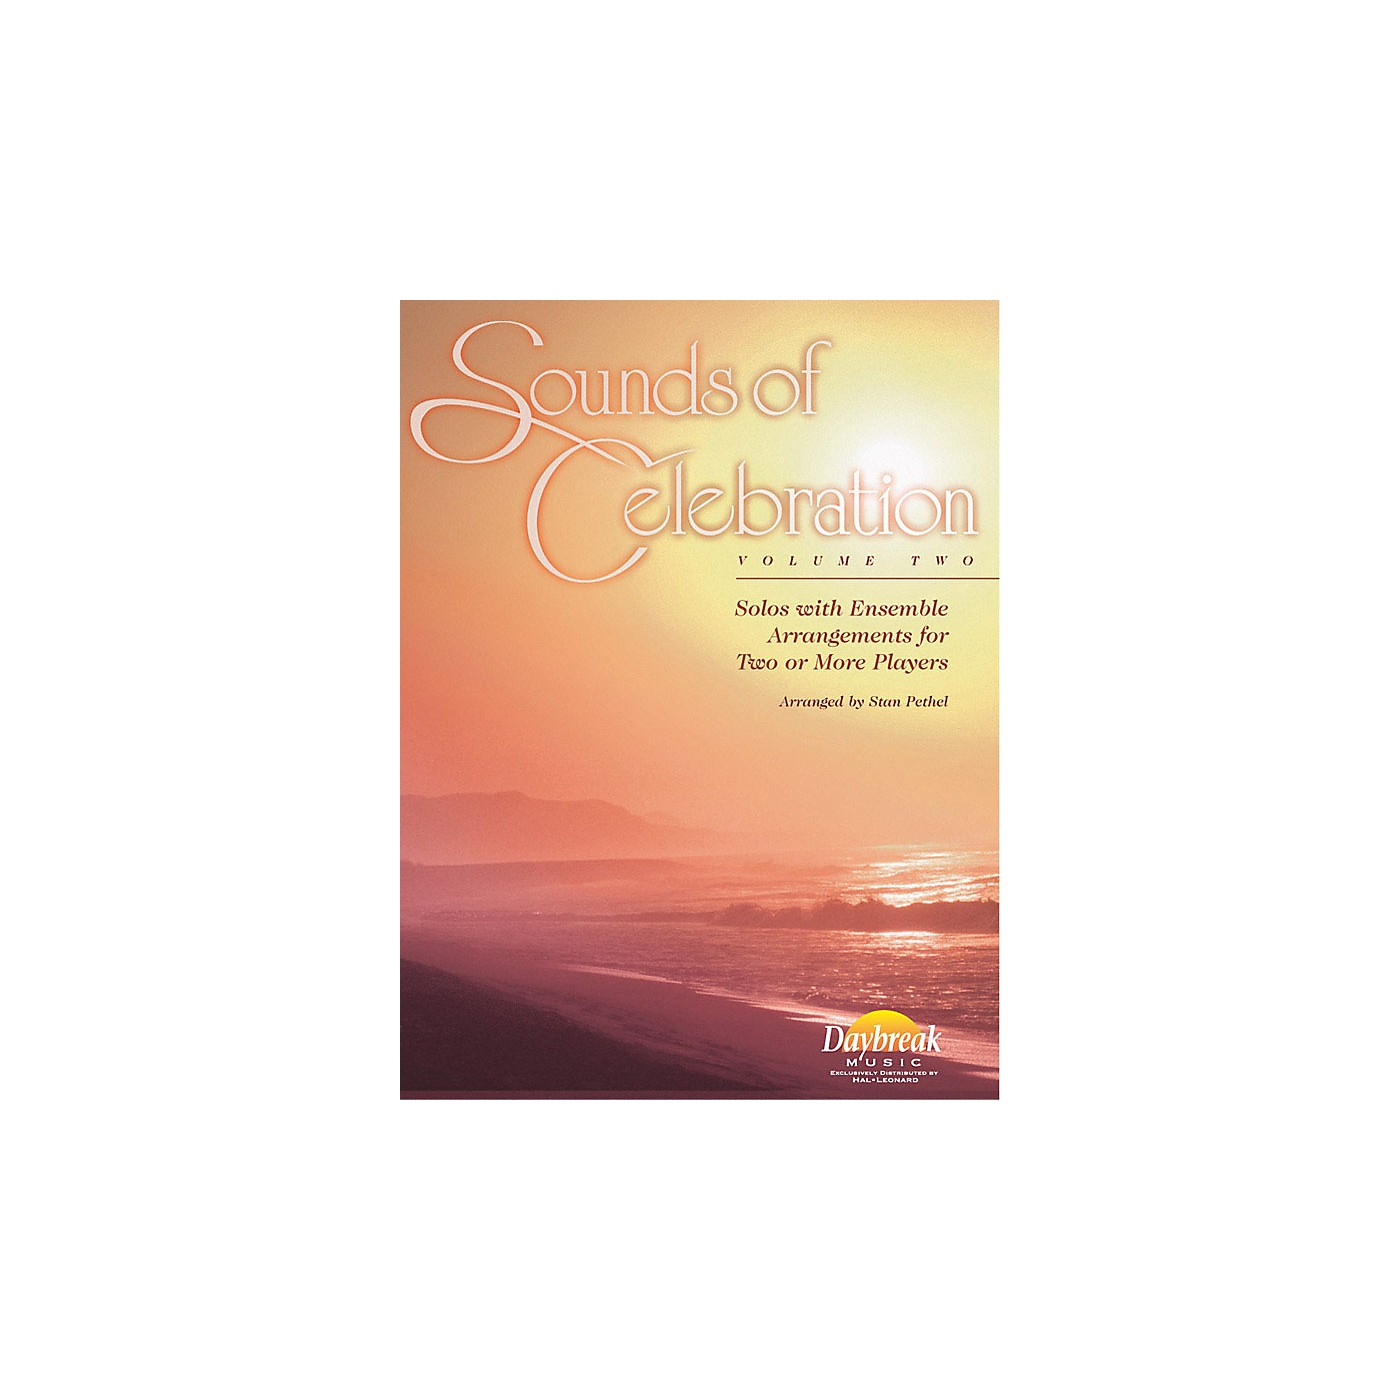 Daybreak Music Sounds of Celebration - Volume 2 (Piano/Rhythm) Piano/Rhythm Arranged by Stan Pethel thumbnail